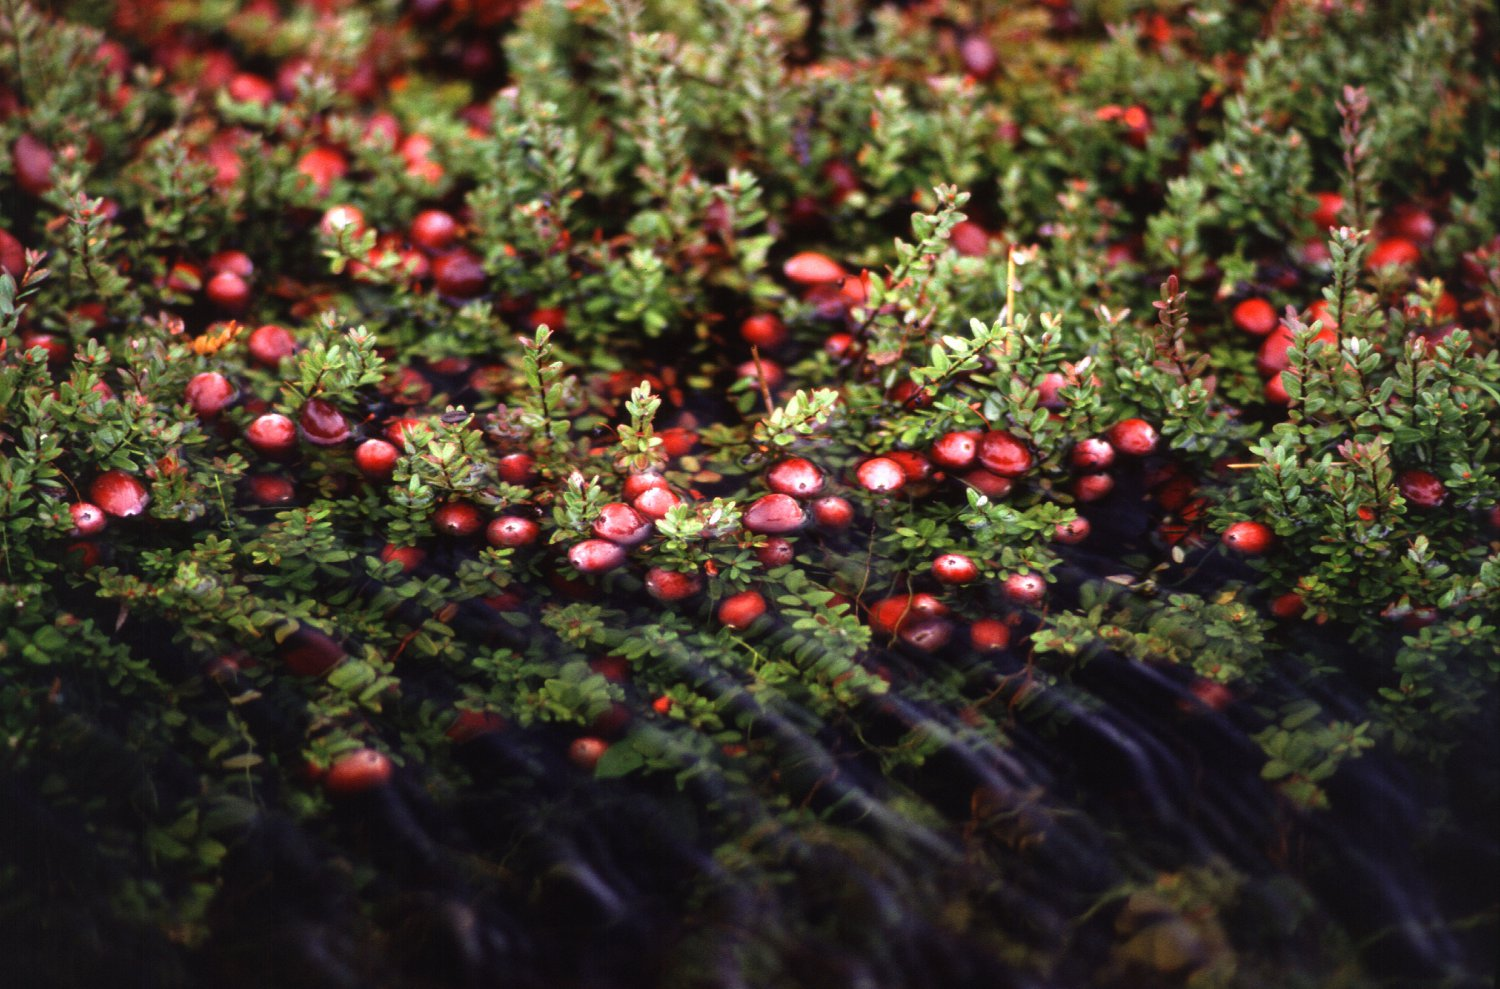 Cranberry bush 25+ seeds (Vaccinium macrocarpon)